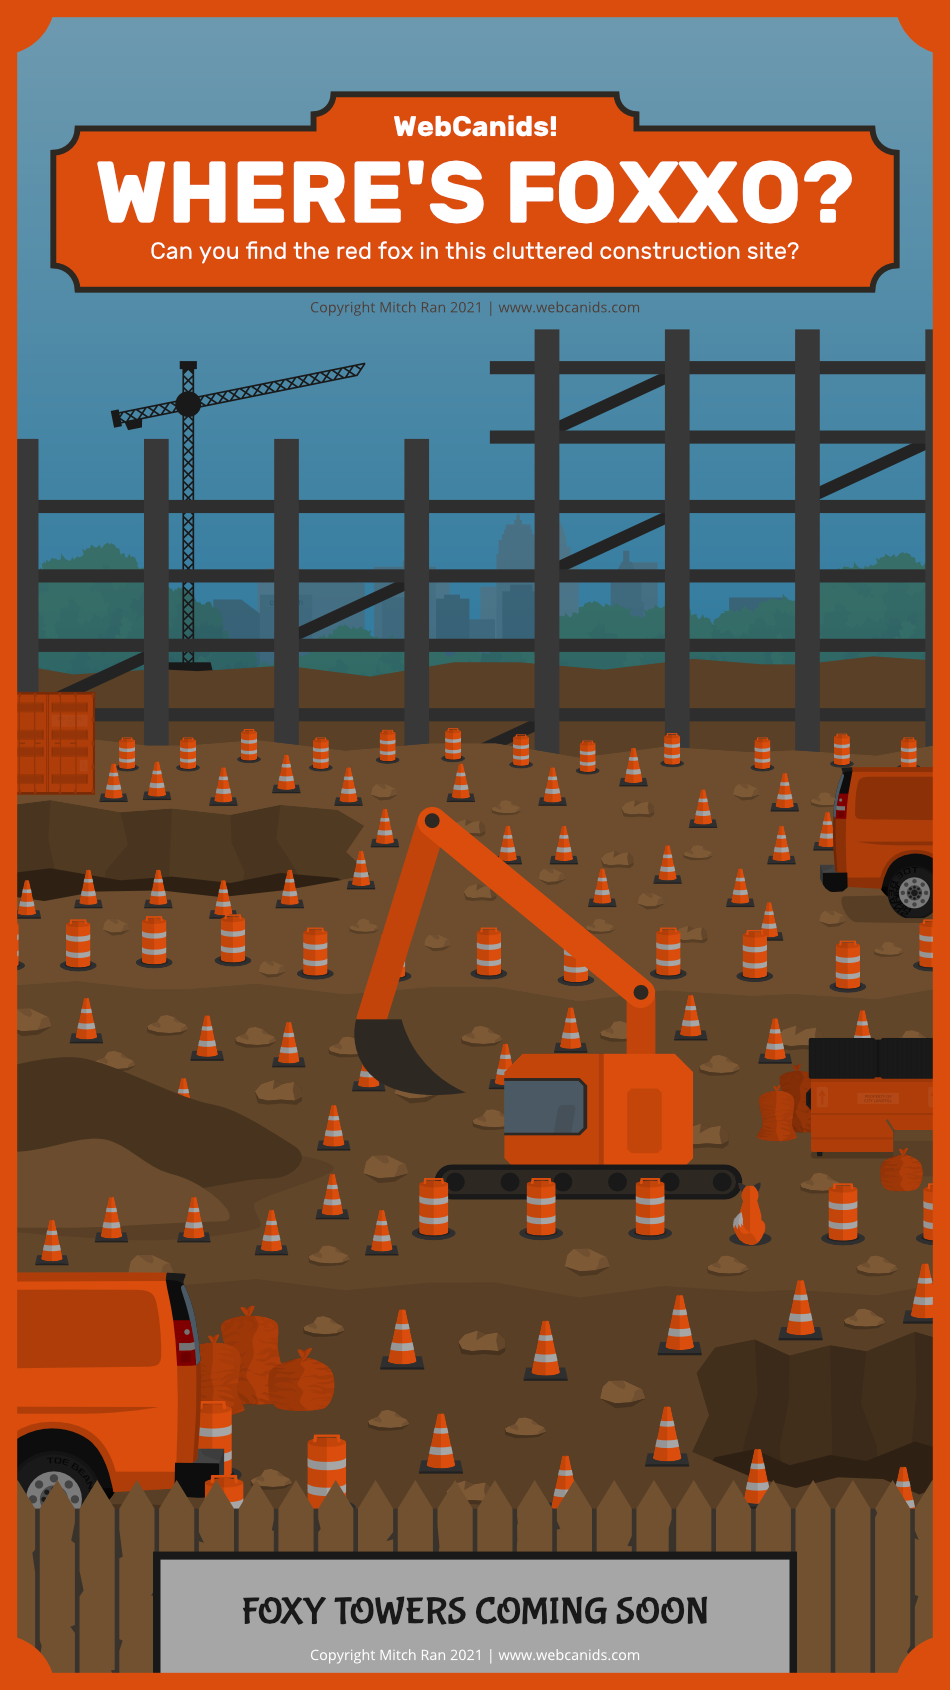 Where's Foxxo - The Cluttered Construction Site